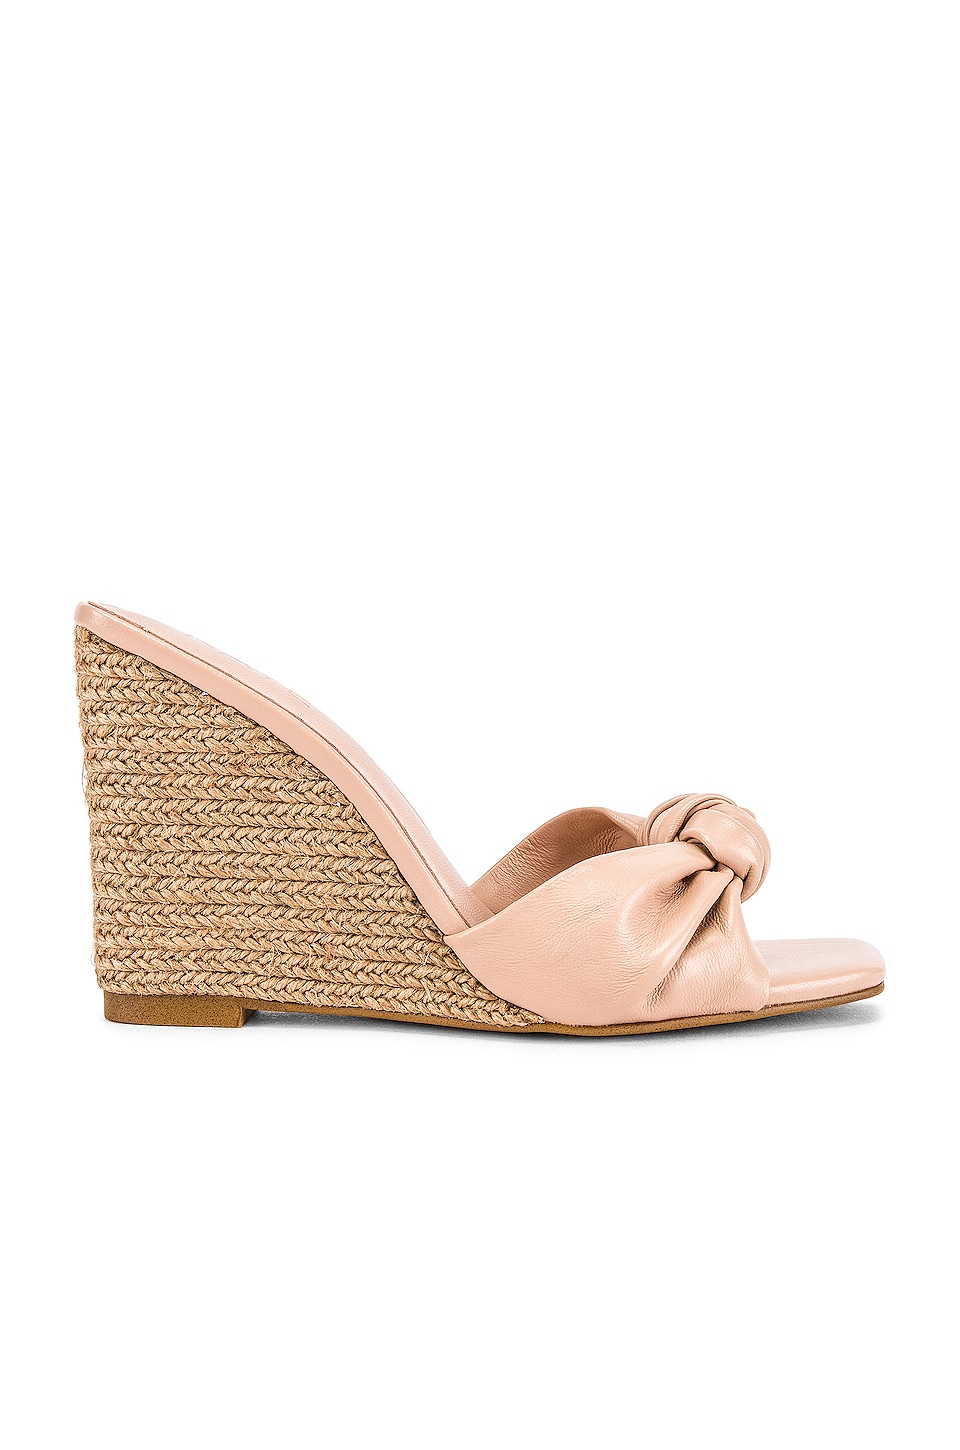 RAYE Zou Wedge in Nude